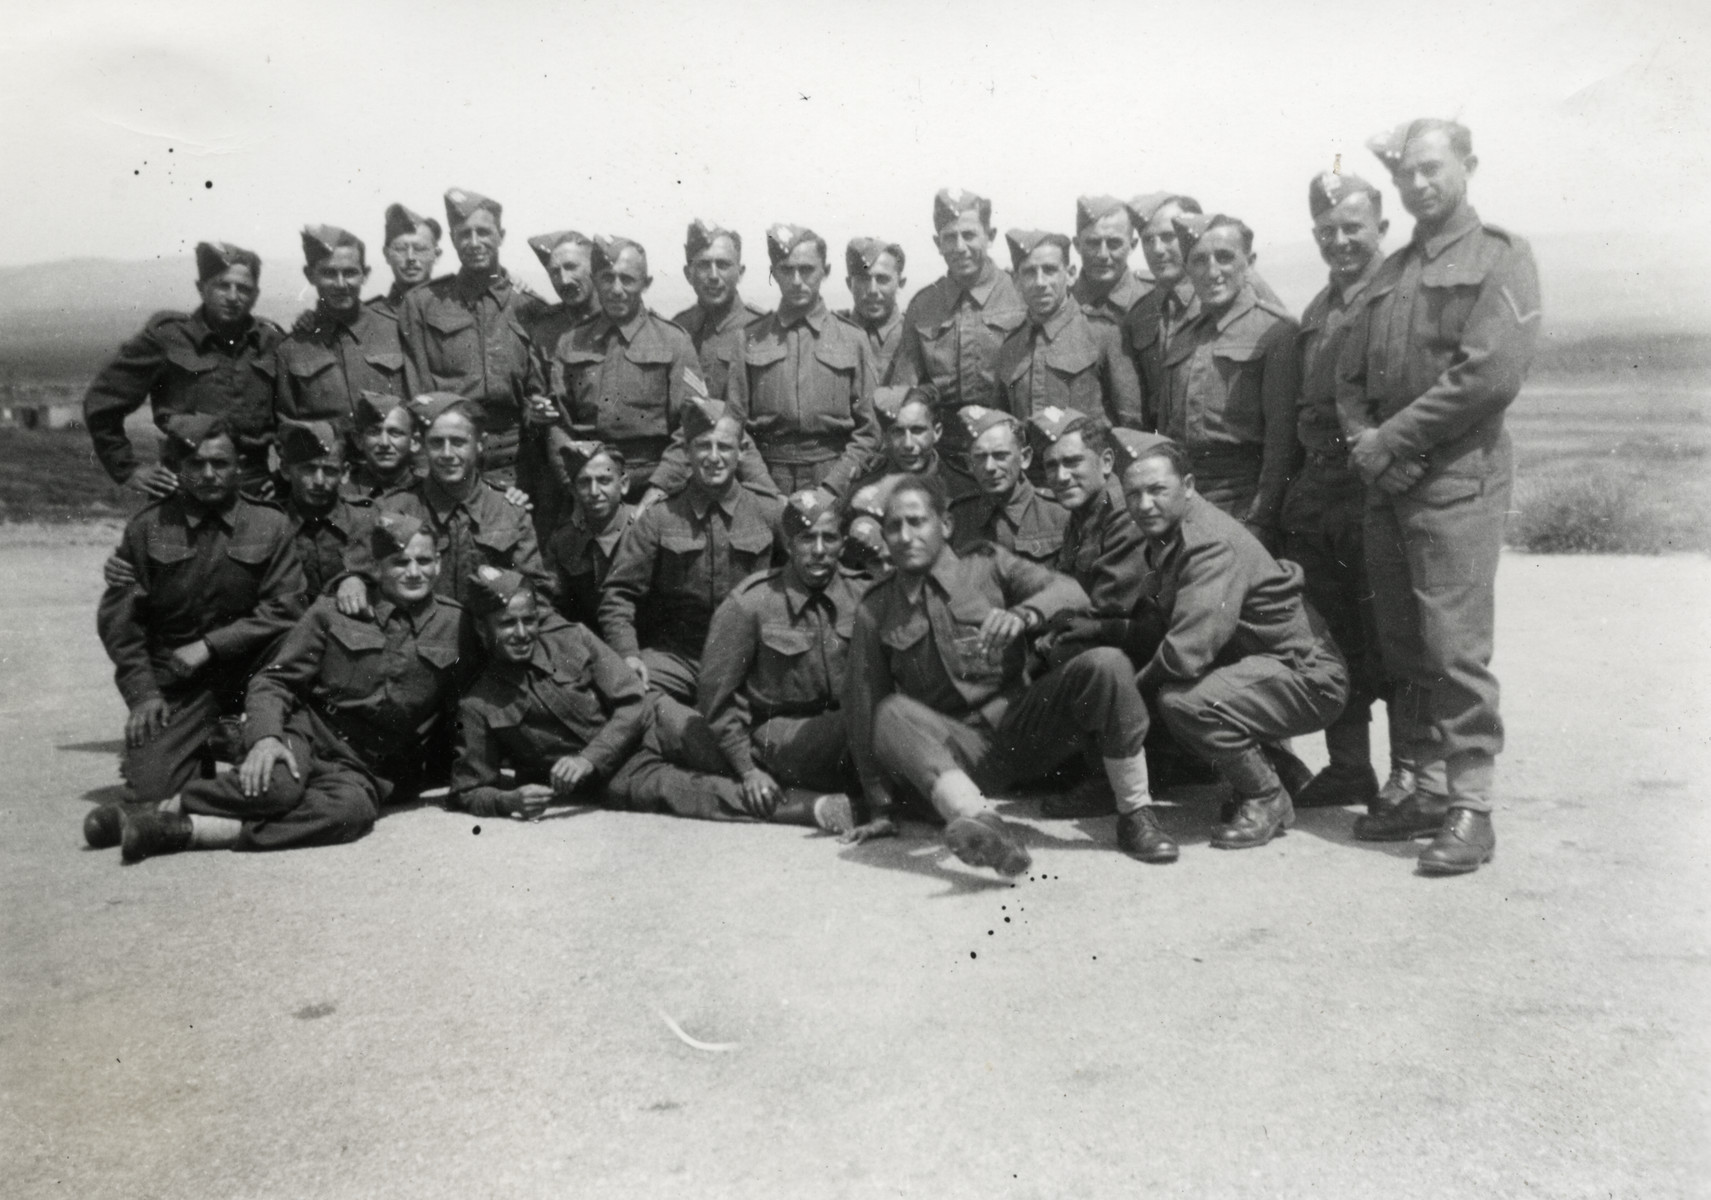 Group portrait of Jewish Brigade soldiers (Unit 8) in Libya.  Chaim Leichter is located in the second row, third from the right.